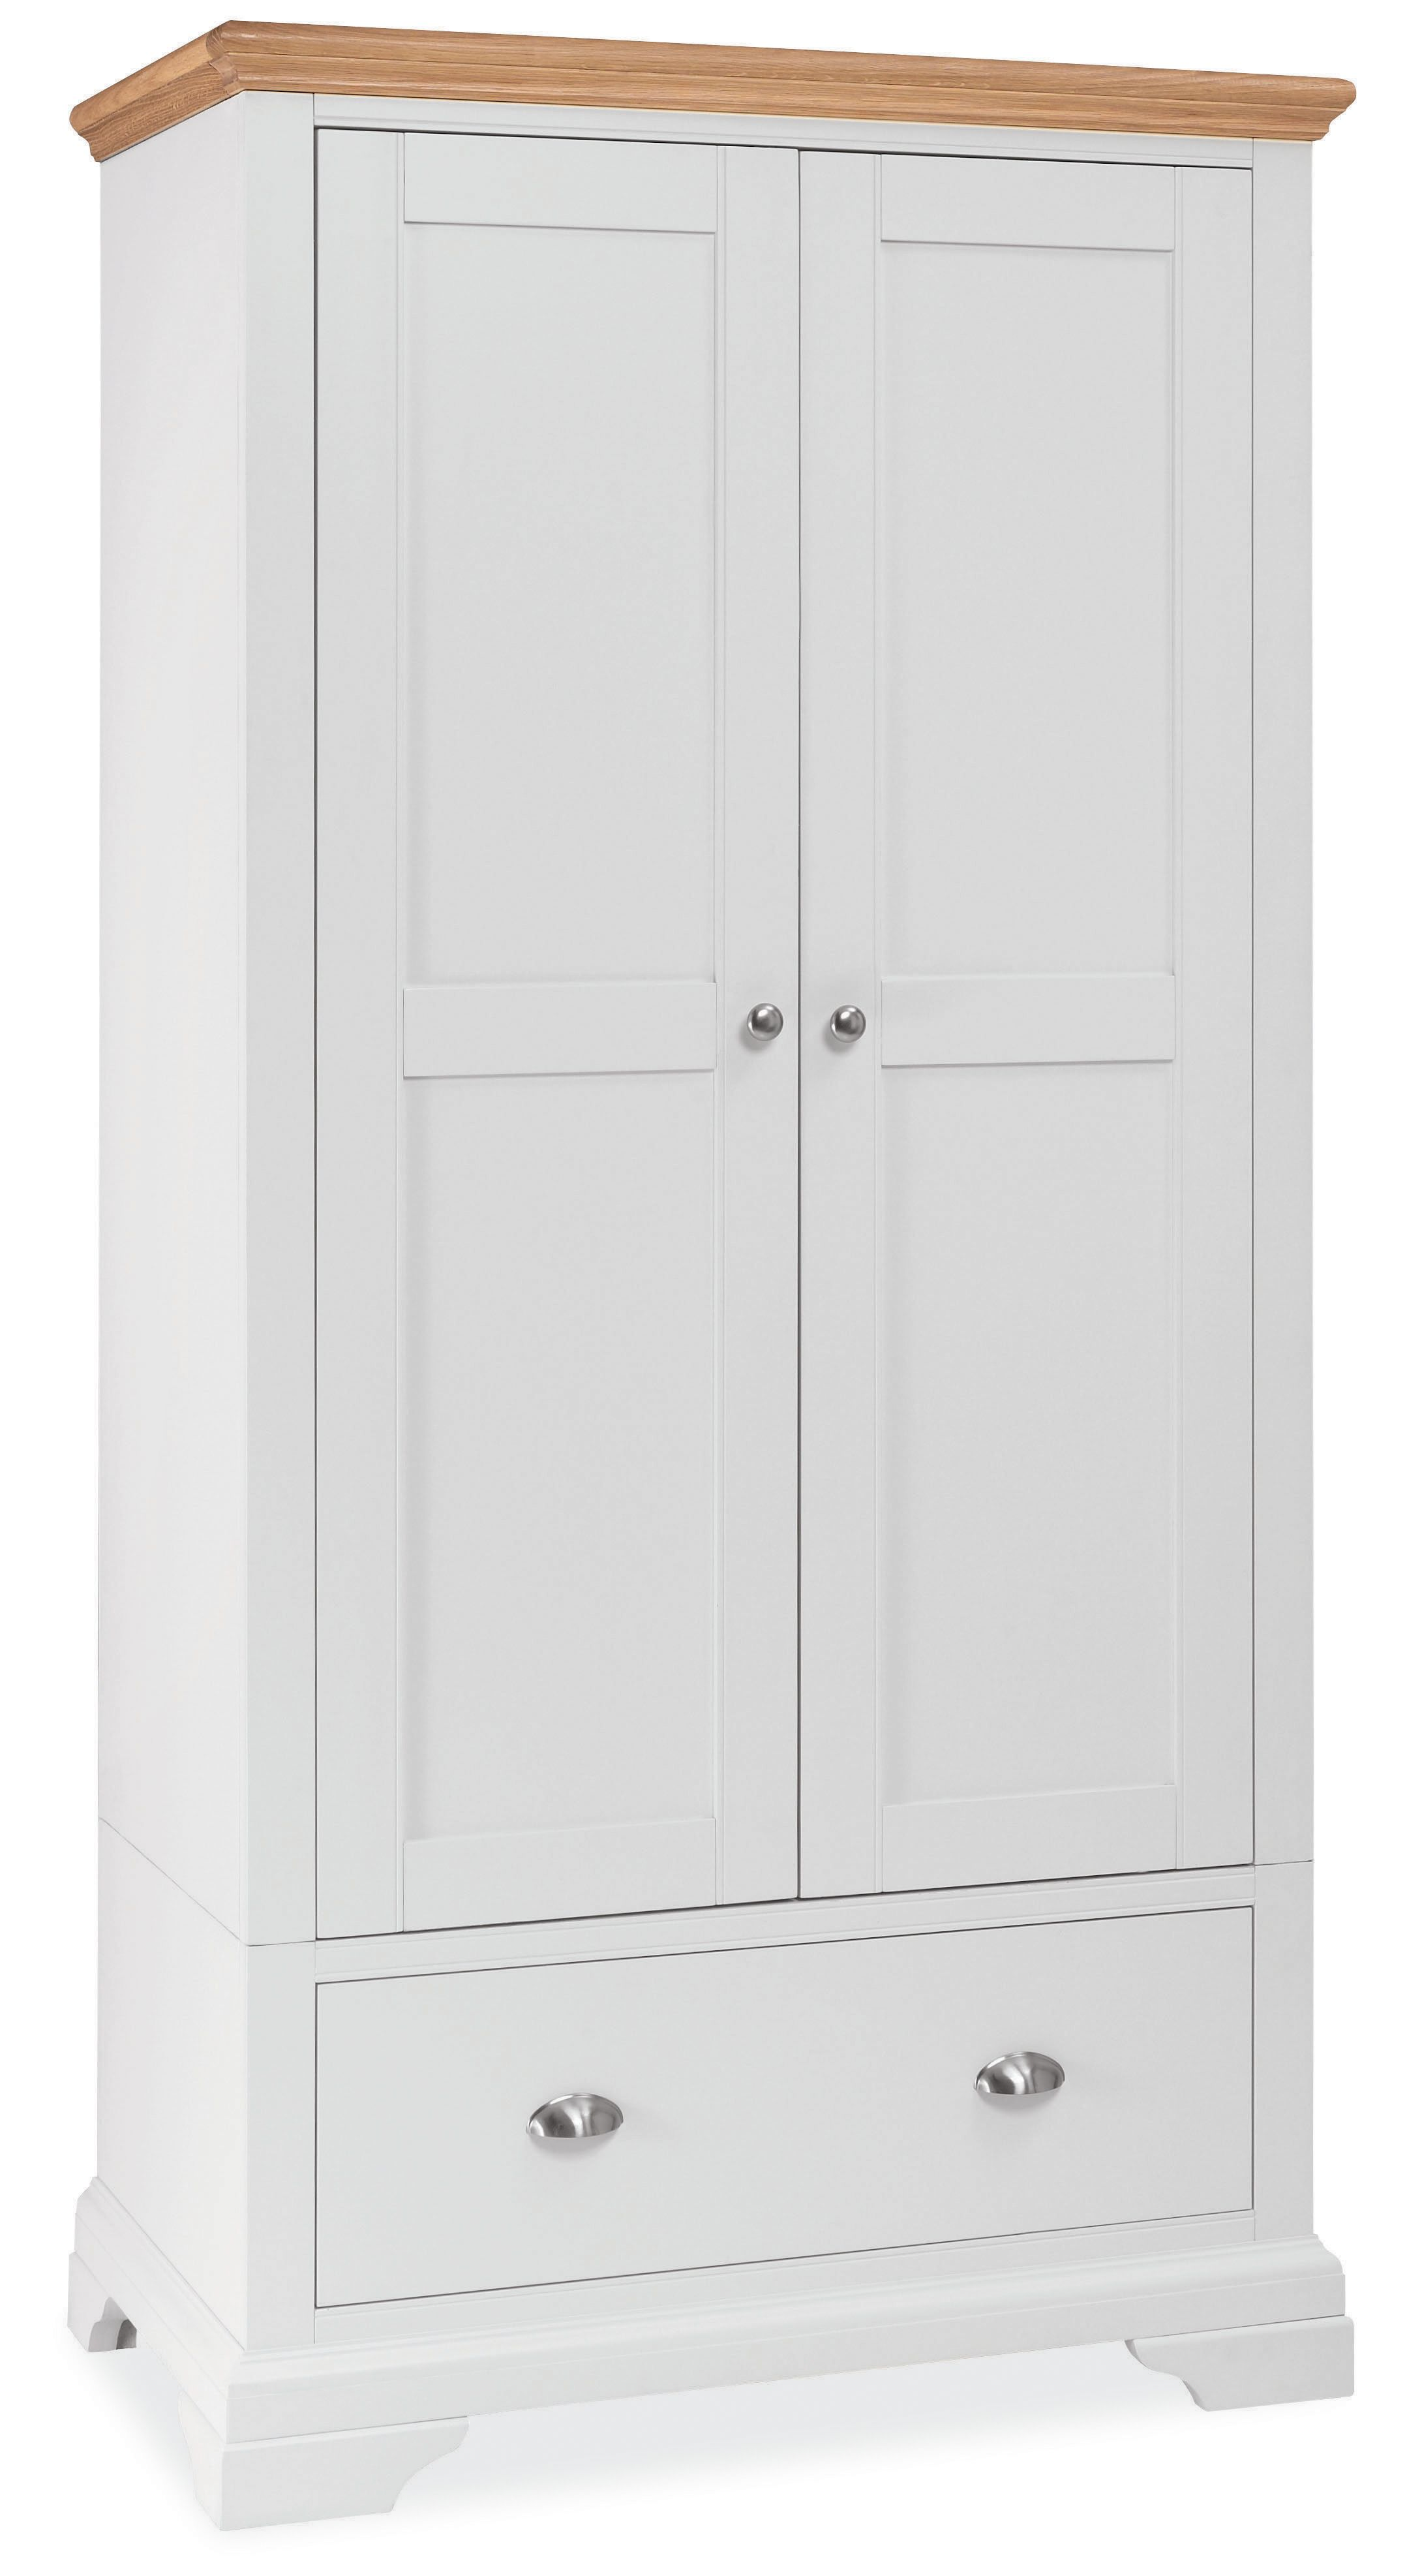 Photo of Linea etienne double wardrobe with drawer